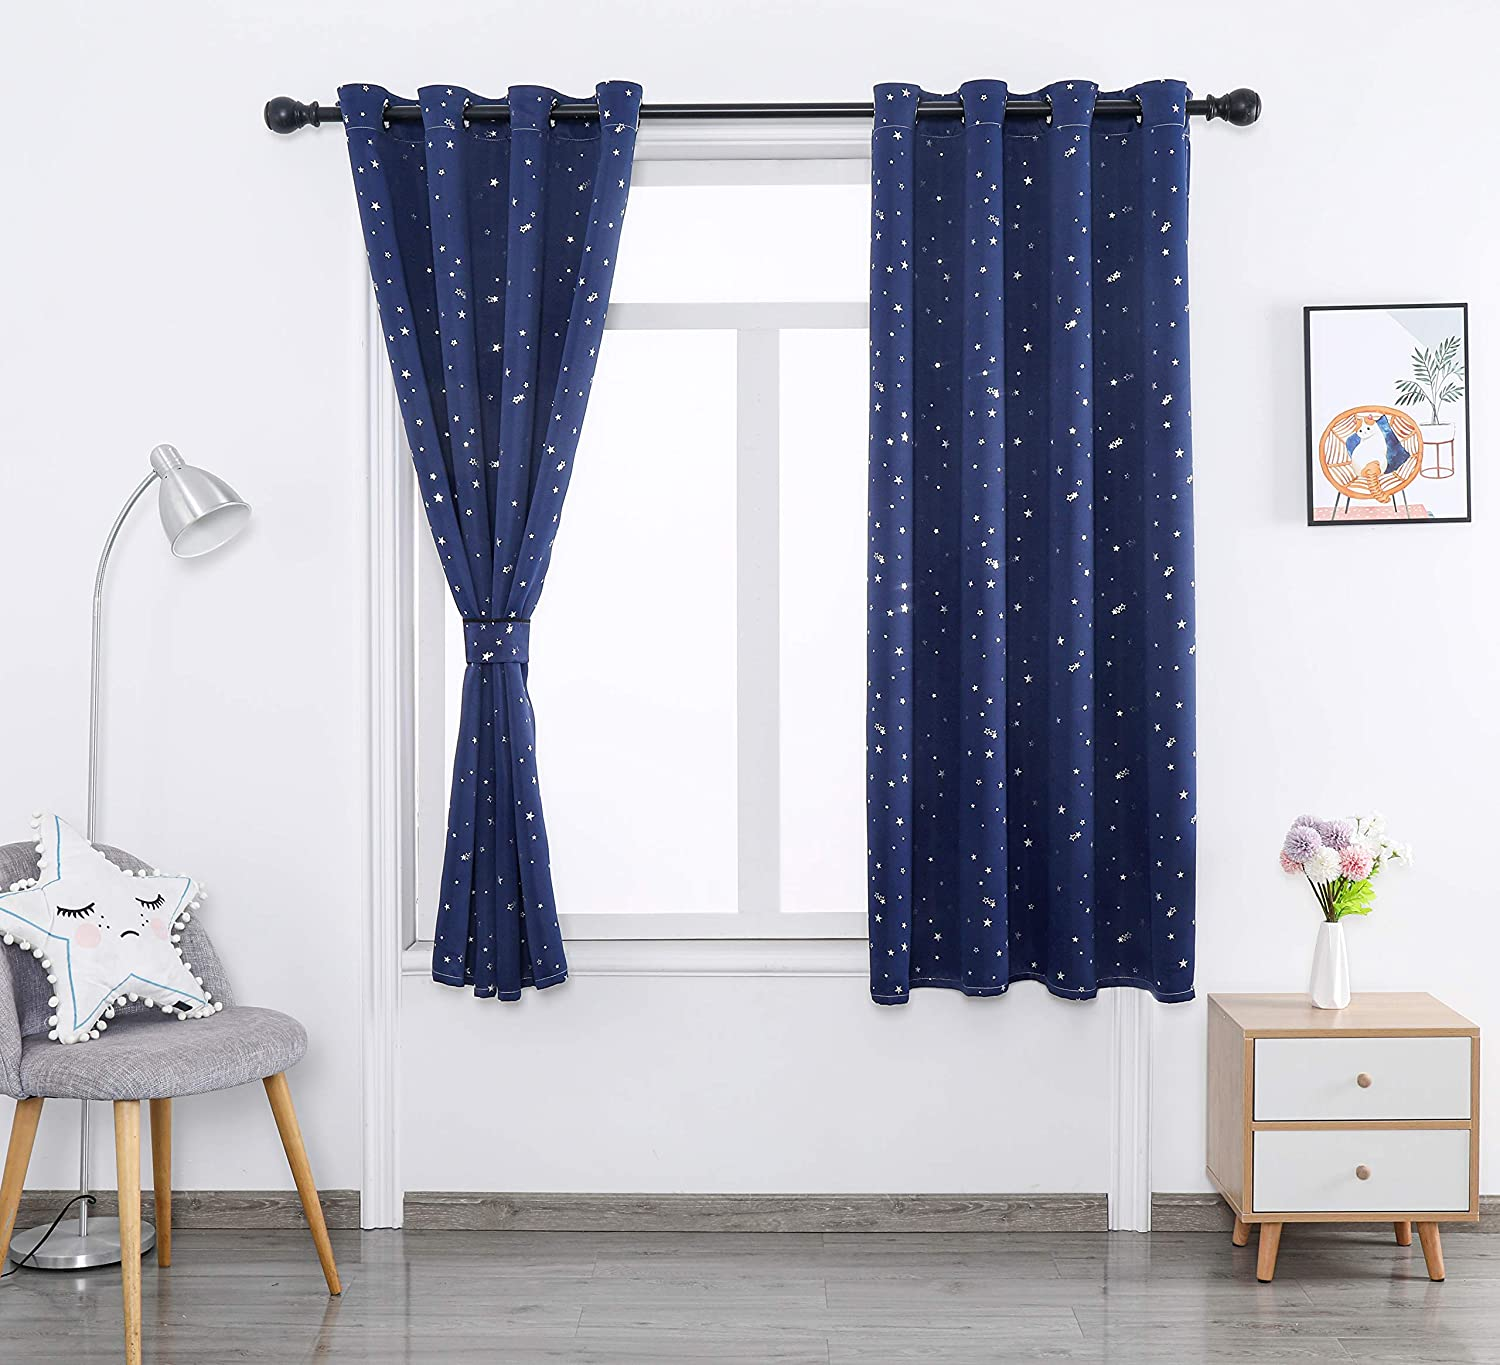 52by84inch Autumn Dream Star Embroidery Linen Kids Blackout Curtains Panels Living Room Grommet Top Blue Kids Curtains for Bedroom